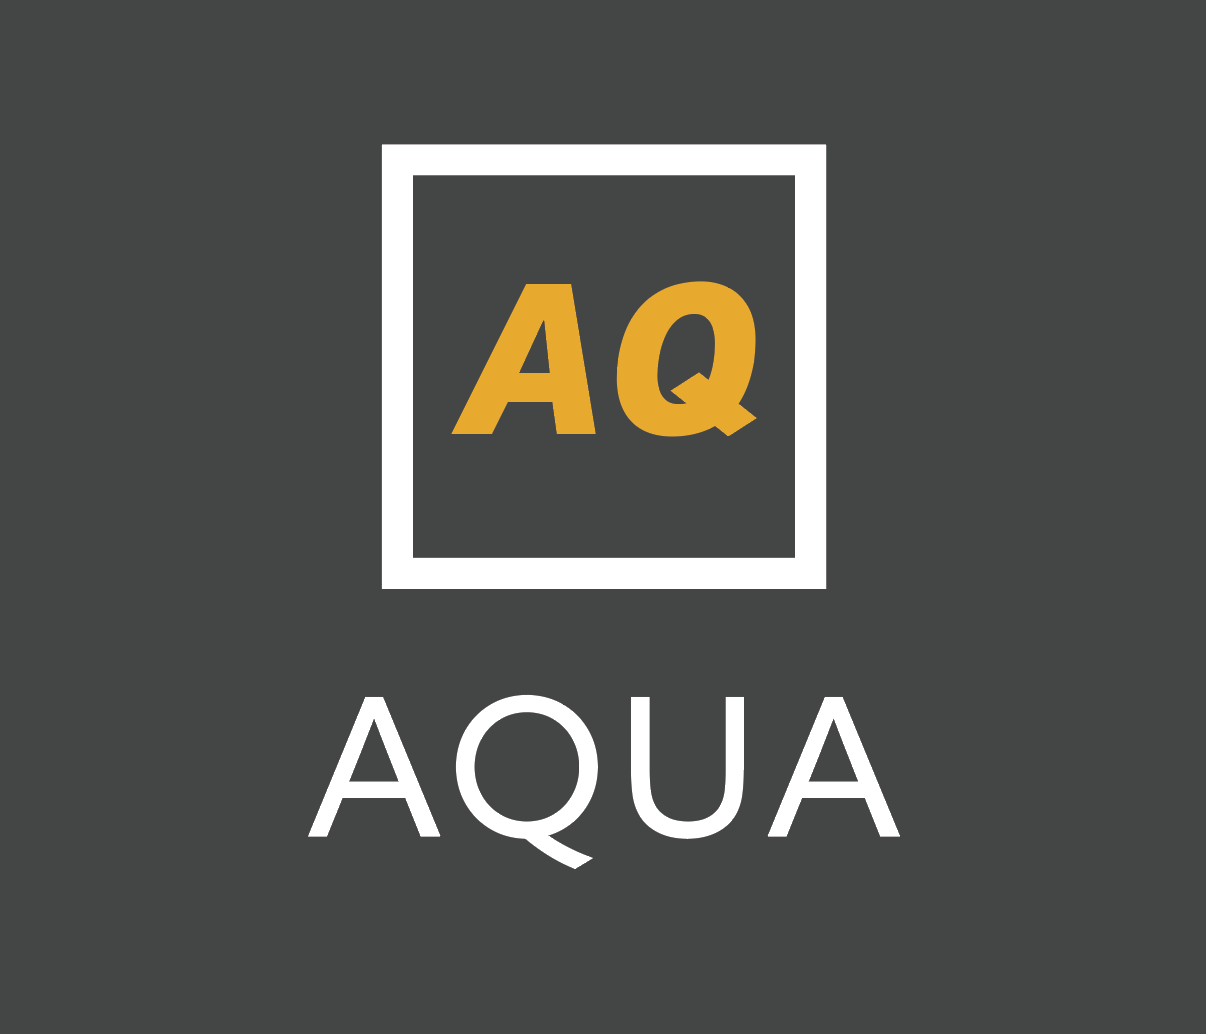 AQUA - Ąqua tirsdag og torsdag 9.30-10-30Aqua aerobics is a combination of corrective gymnastics with aerobics and swimming elements. Undoubtedly, this training is worth recommending to all those who value a sporty, slender figure and, above all, a healthy body.